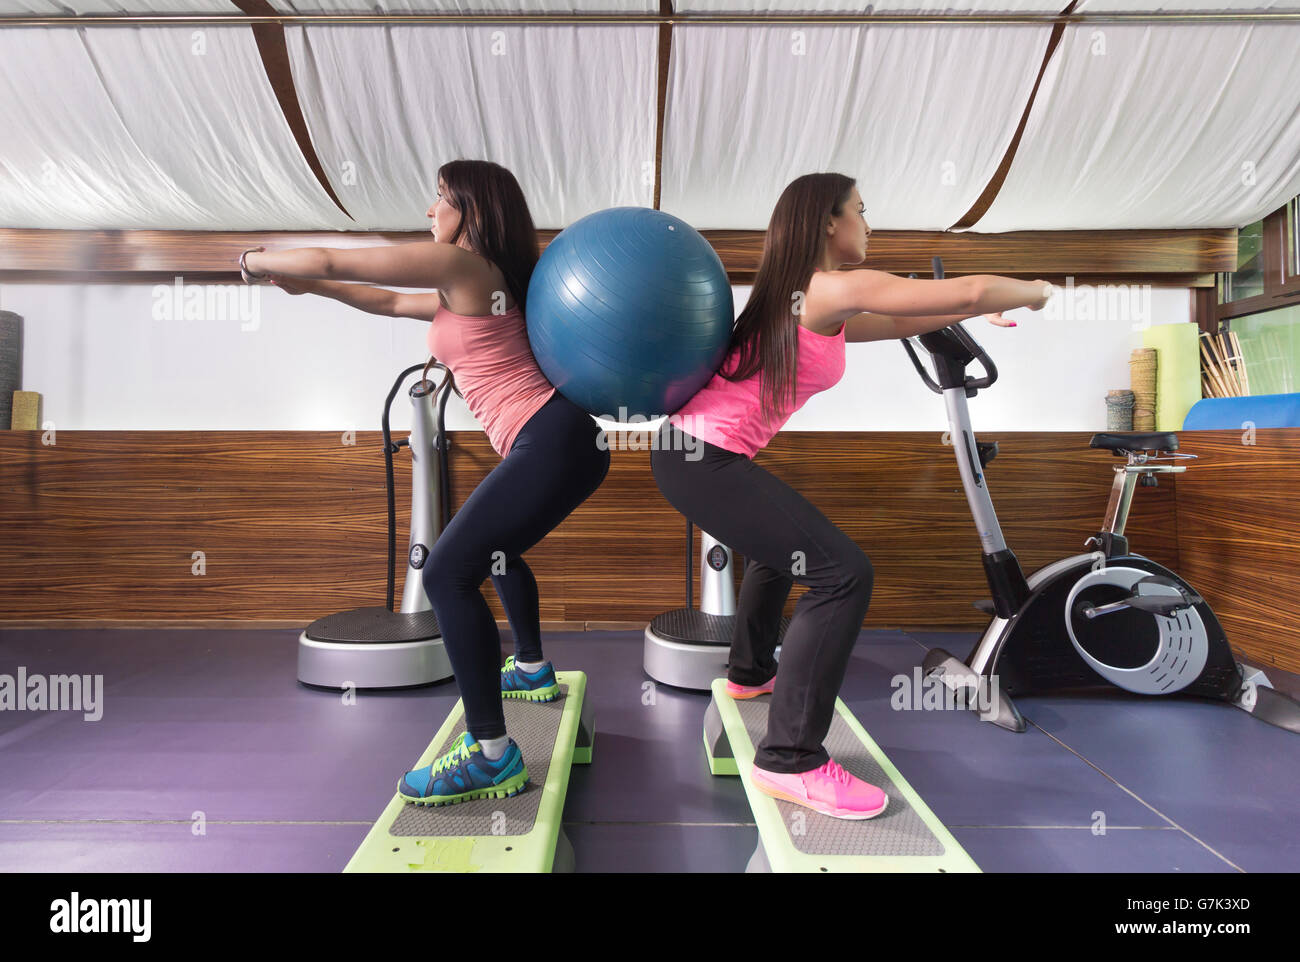 Two women gym exercise ball backs. side view. - Stock Image